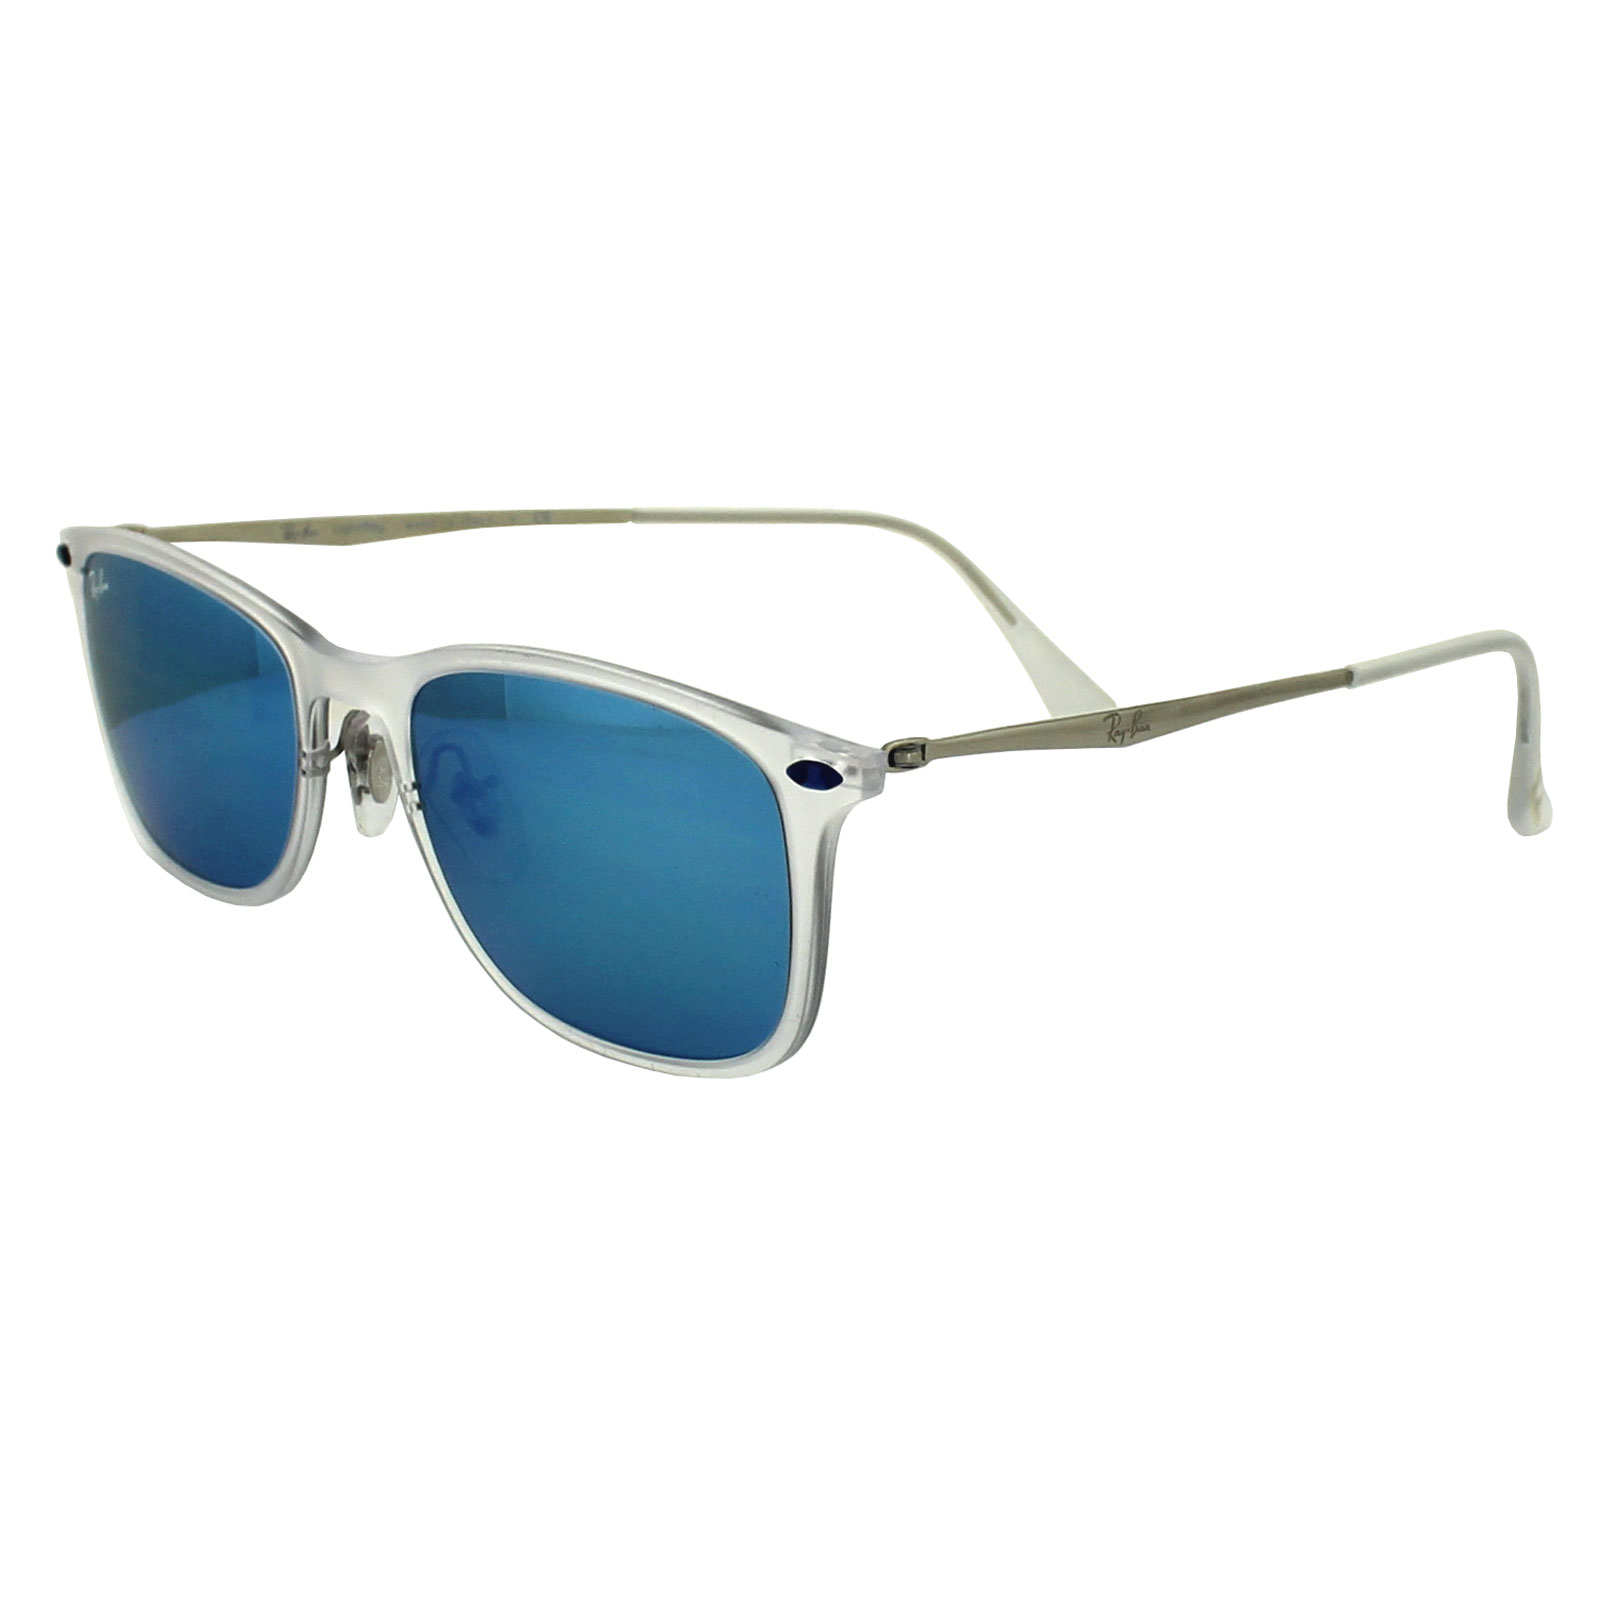 gold rimmed ray bans mw66  Ray-Ban Sunglasses New Wayfarer Light Ray 4225 646/55 Transparent Blue  Mirror